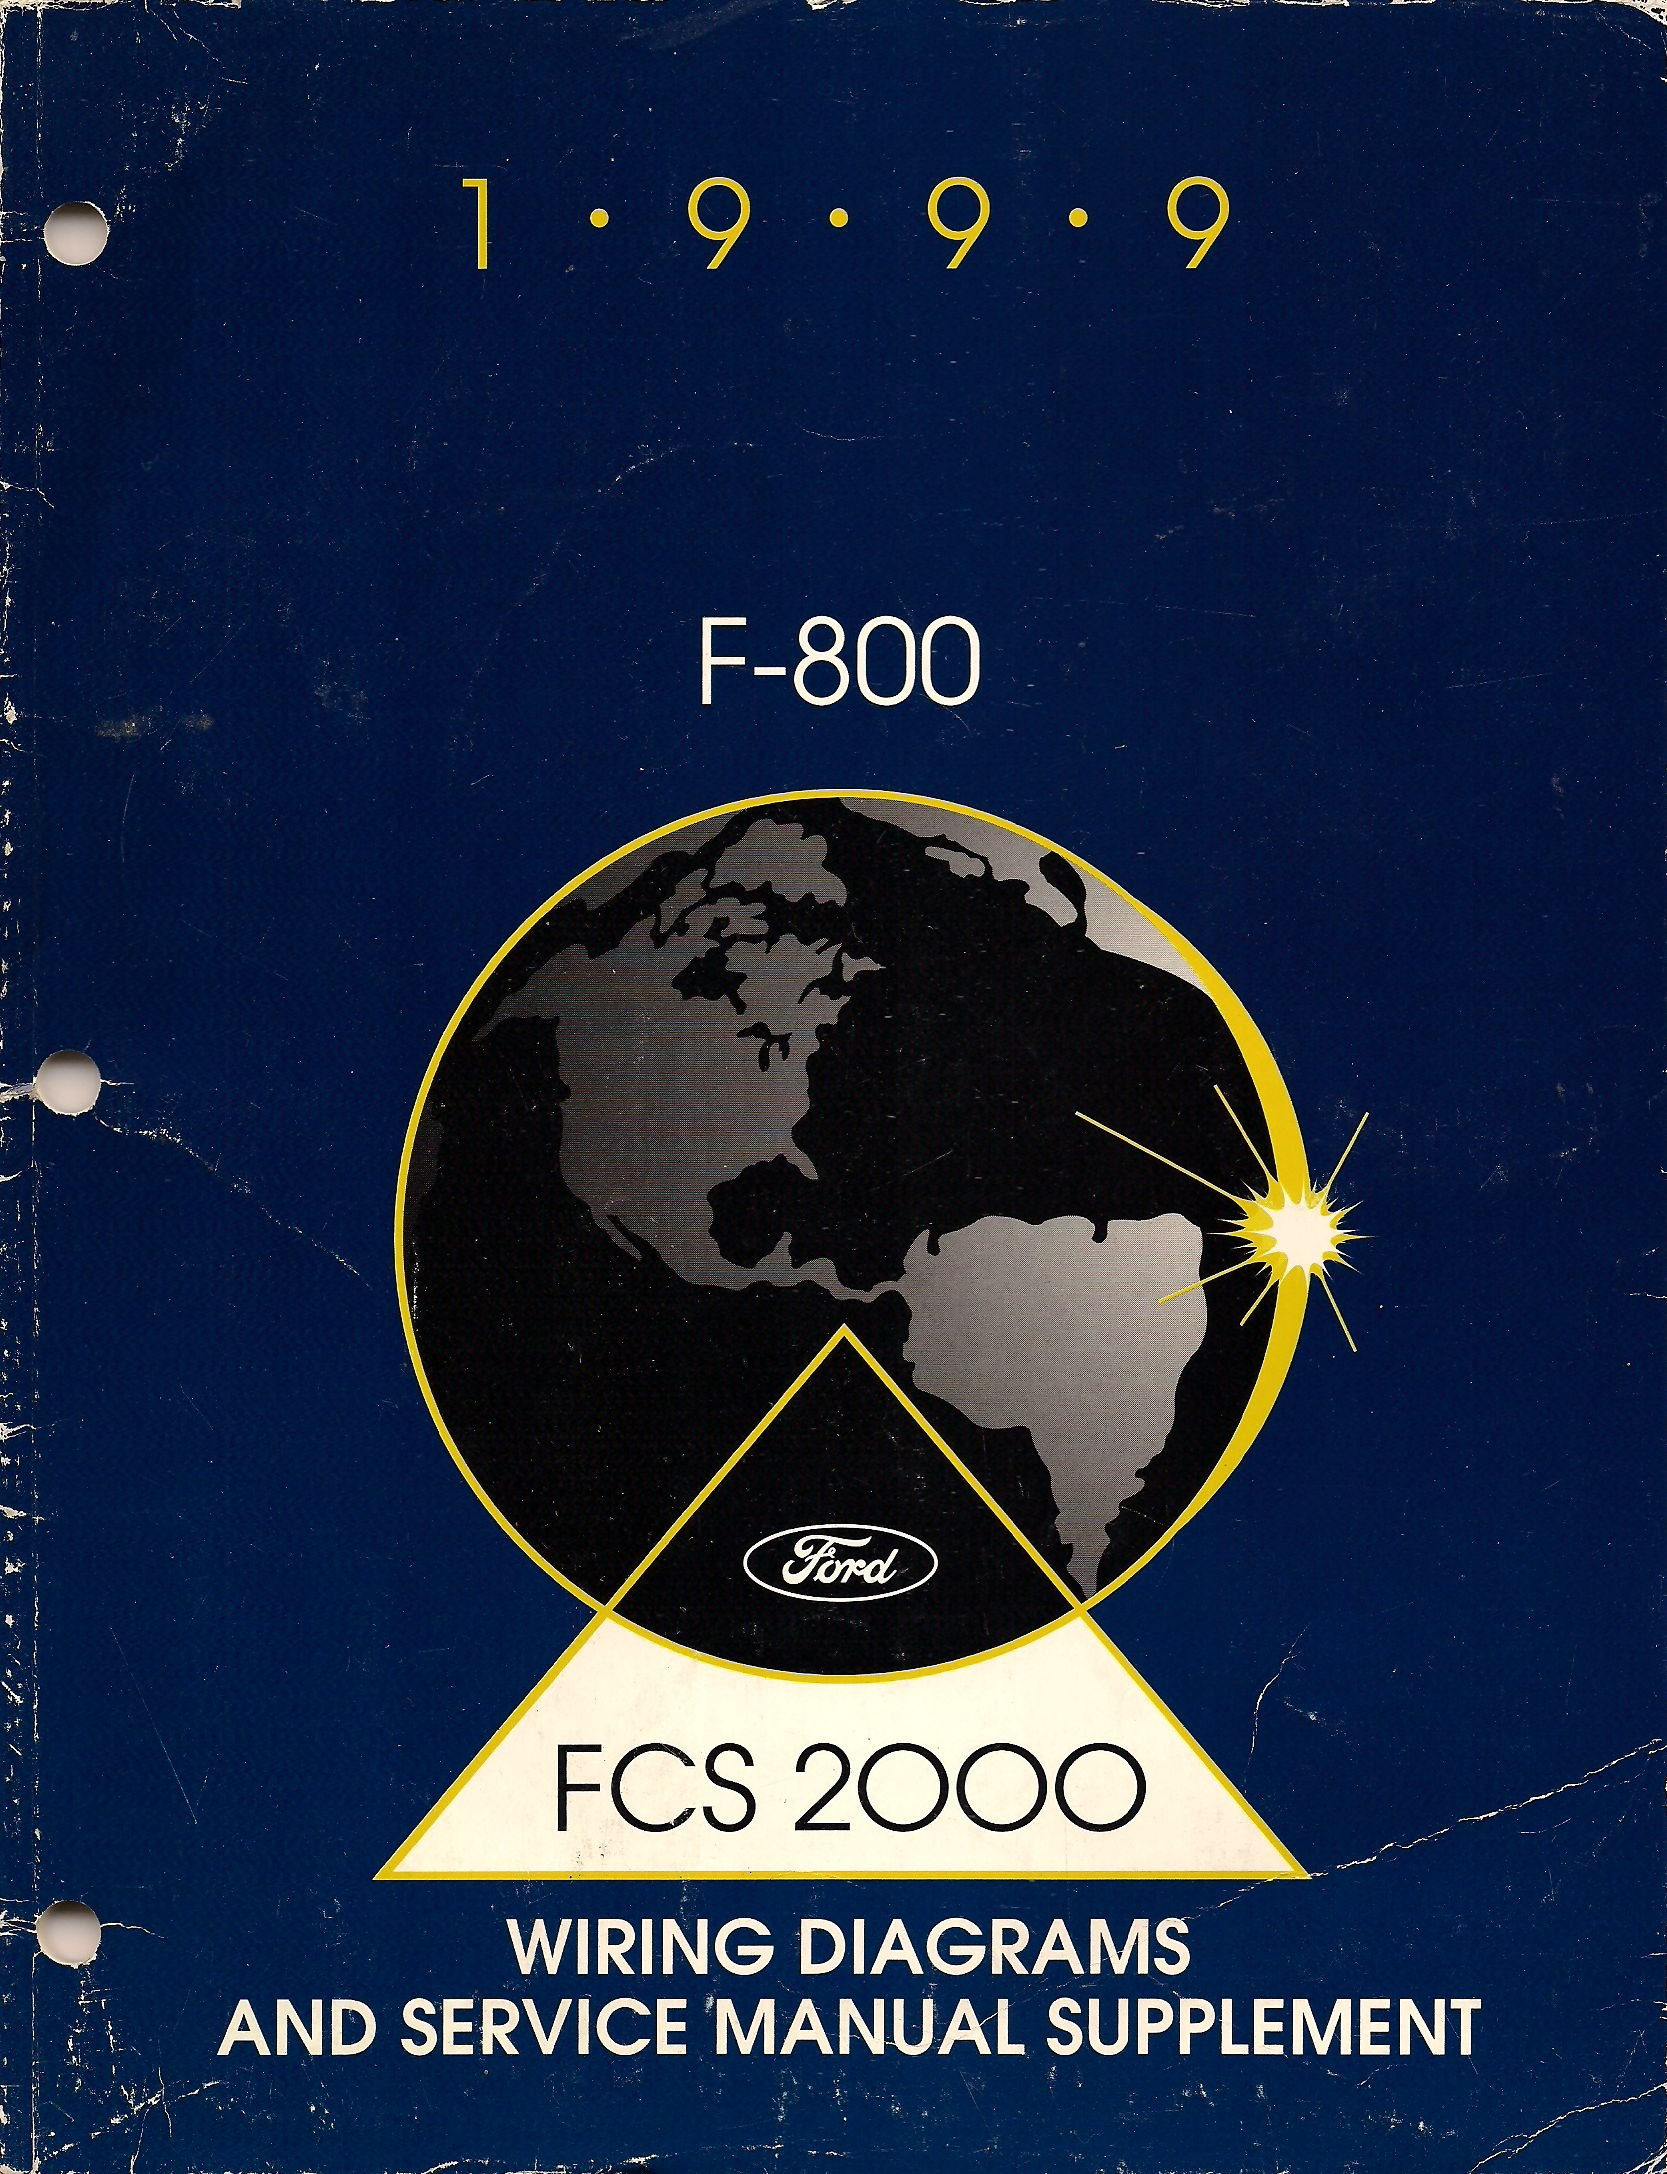 1999 Ford F 800 Wiring Diagrams And Service Manual Supplement Diagram Motor Company Books